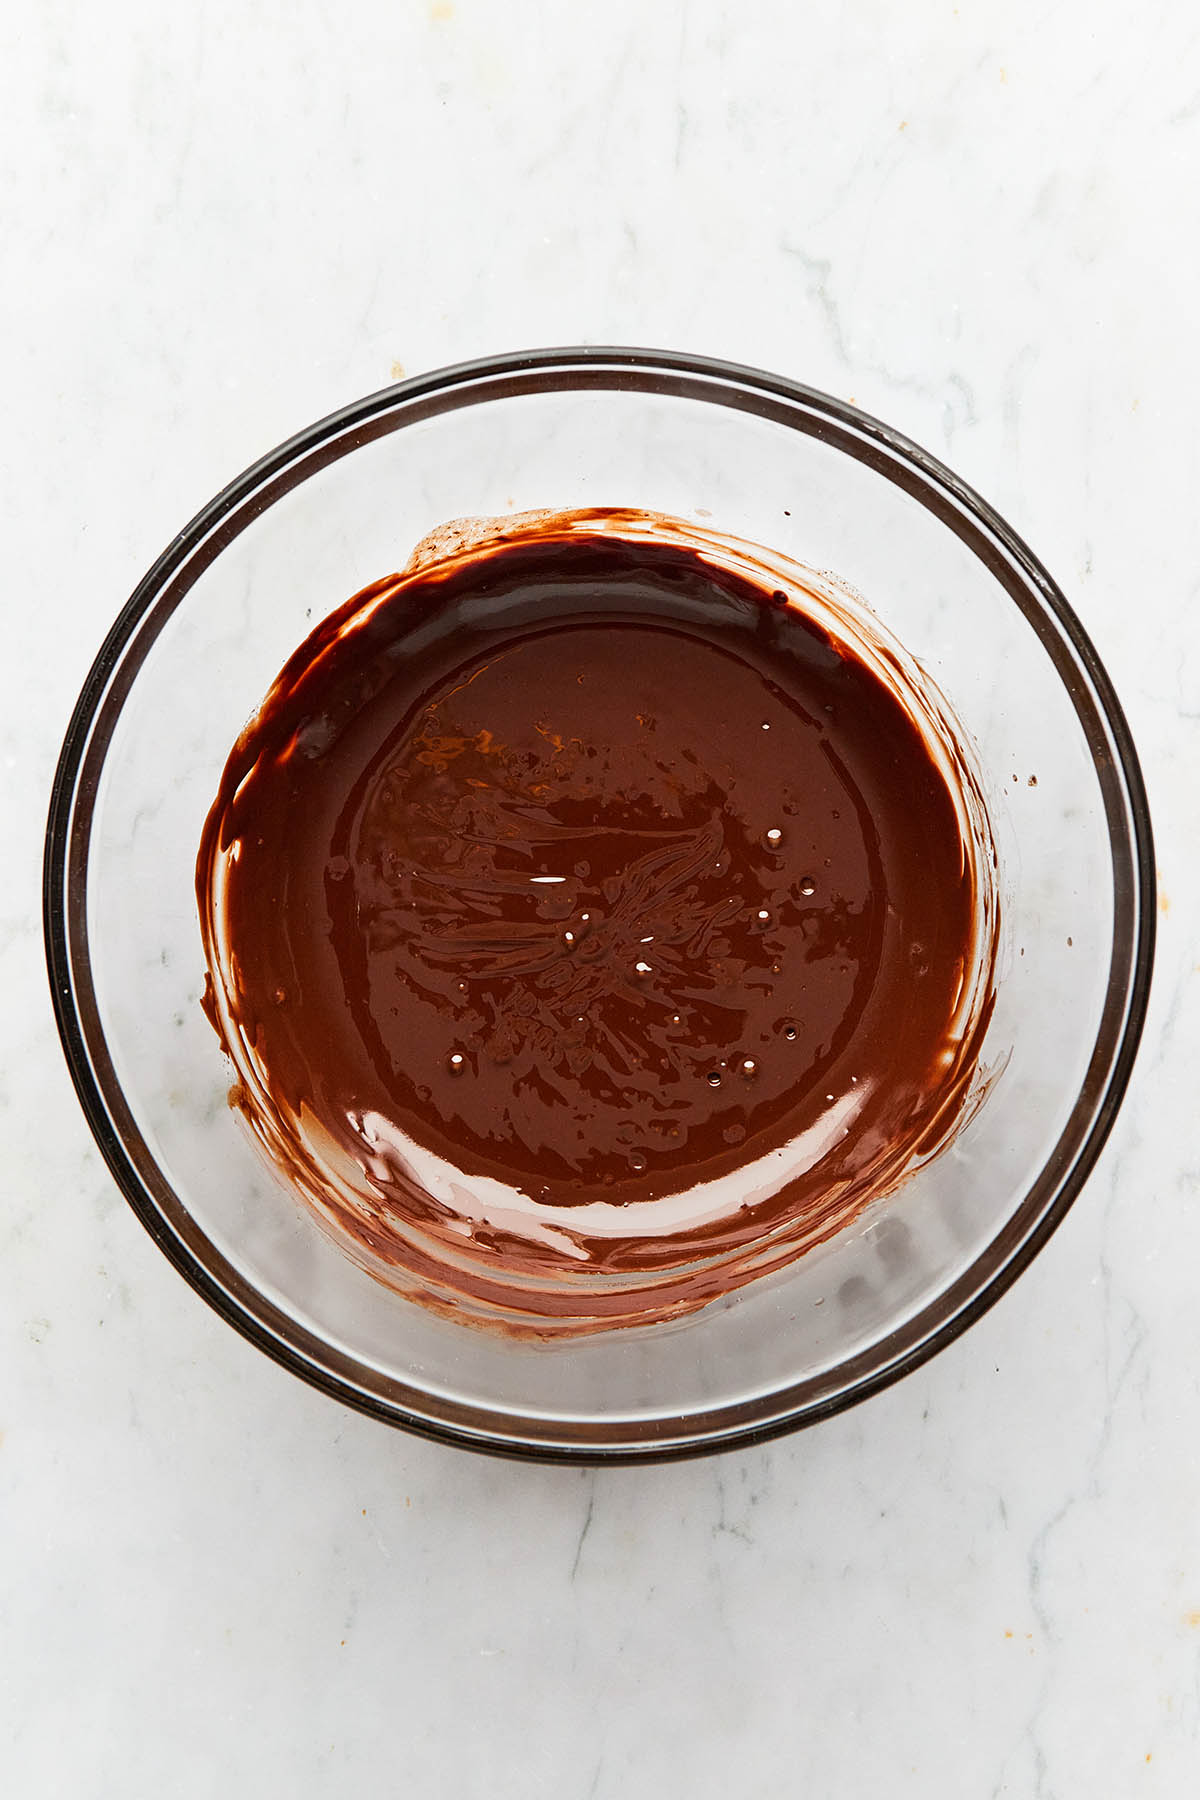 A bowl of melted chocolate.